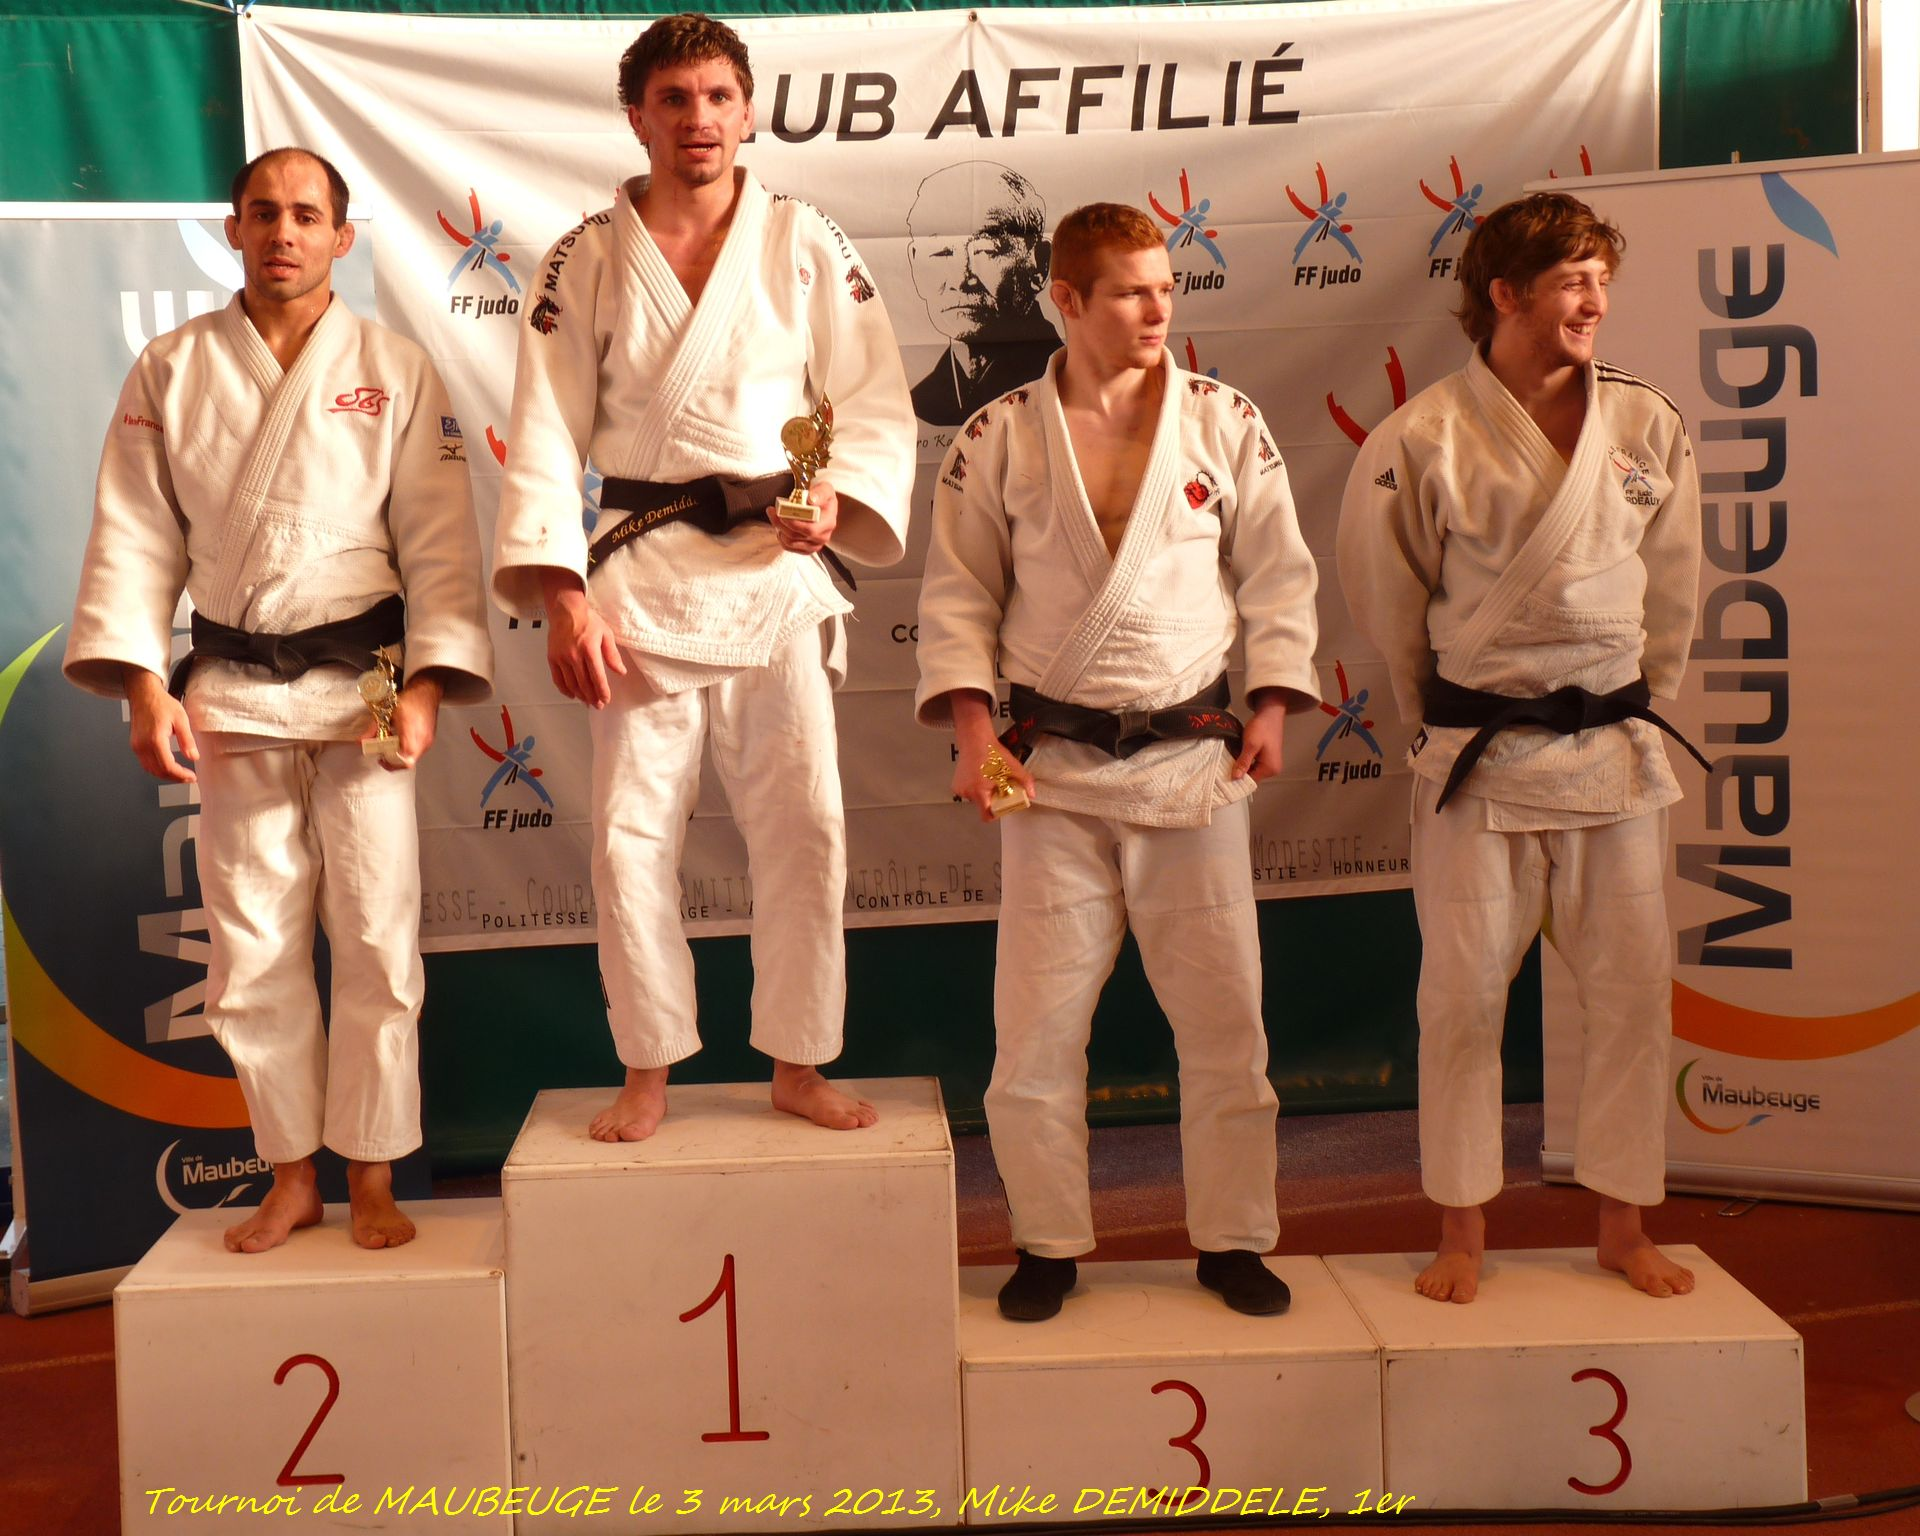 ippon seoi nage inverse relationship